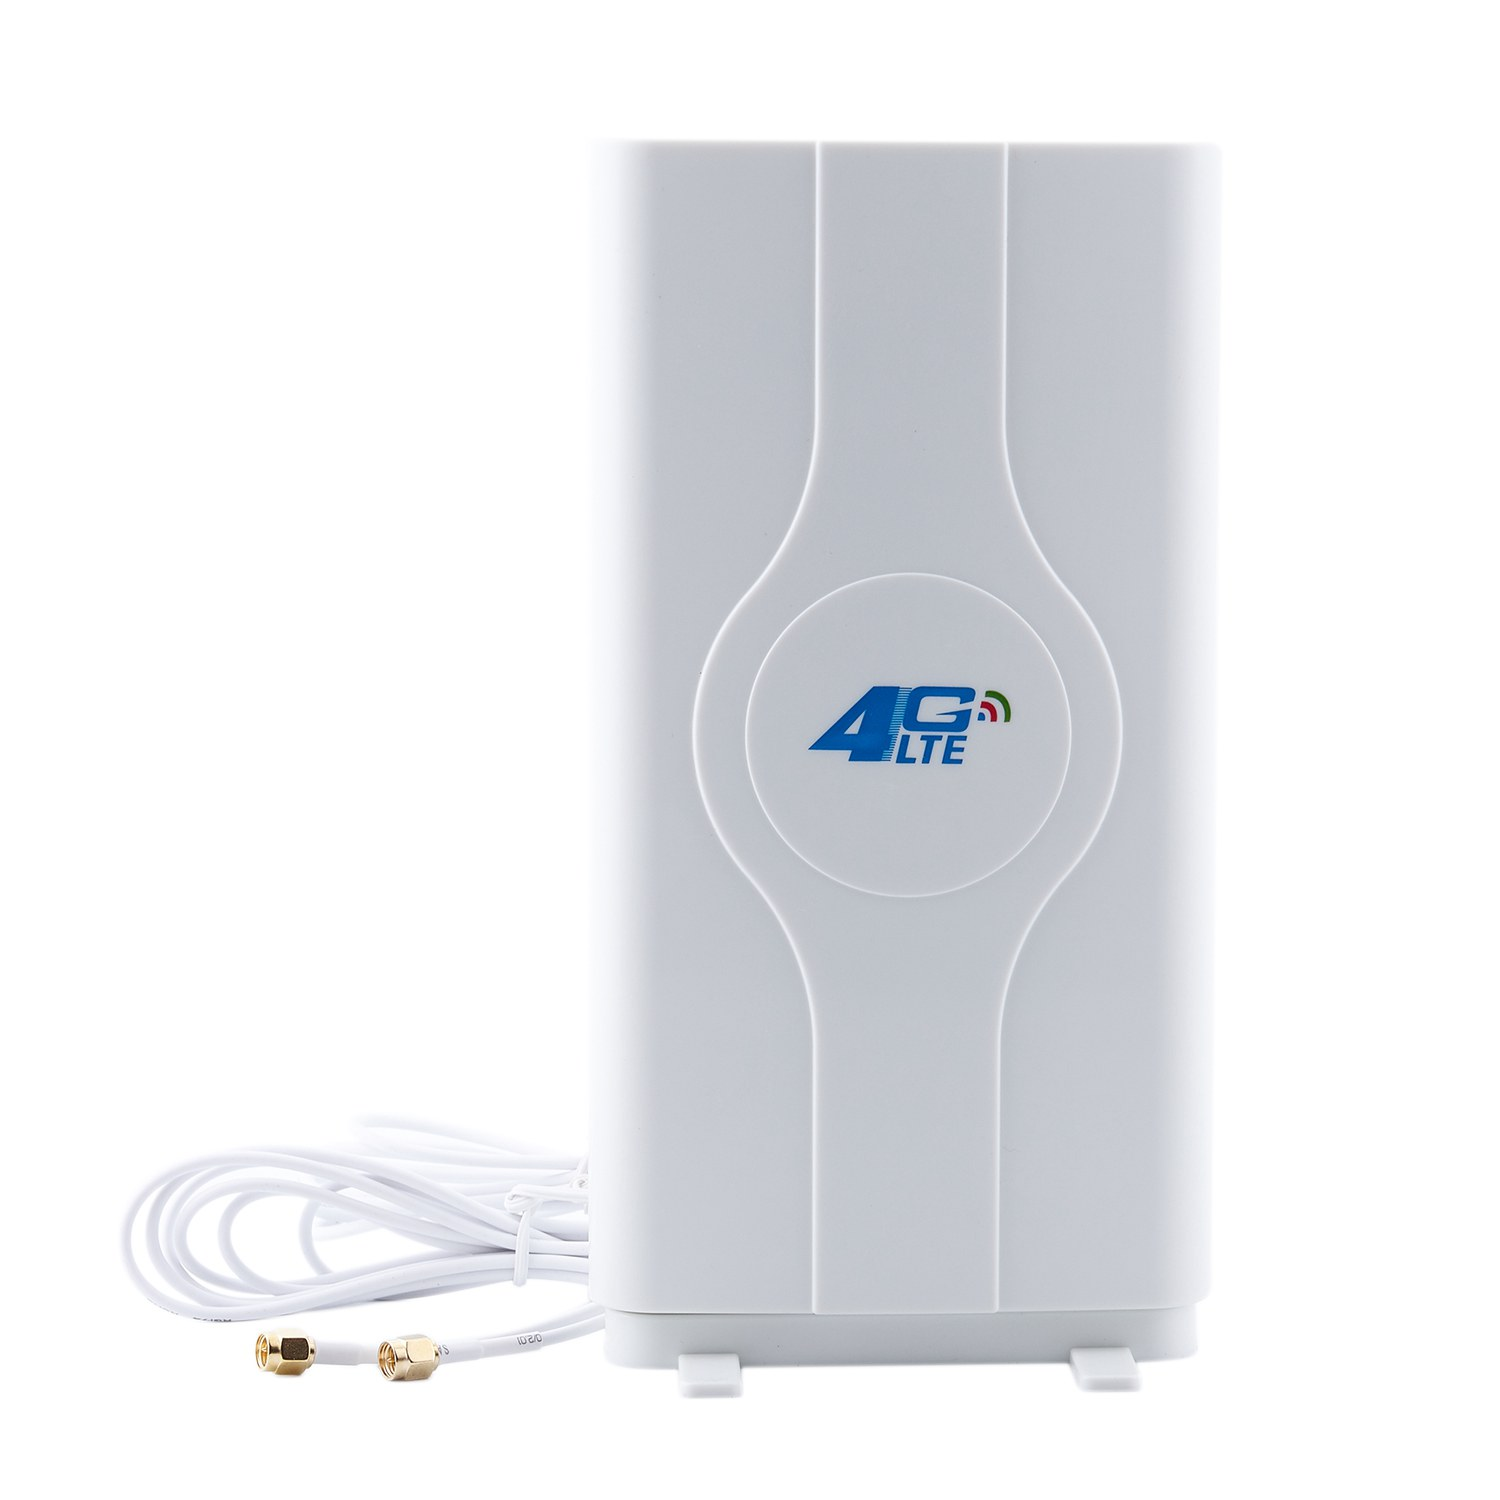 700~2600mhz 88dbi 3g 4g Lte Antenna Mobile Antenna Male Connector Booster Mimo Panel Antenna+2 Meters700~2600mhz 88dbi 3g 4g Lte Antenna Mobile Antenna Male Connector Booster Mimo Panel Antenna+2 Meters